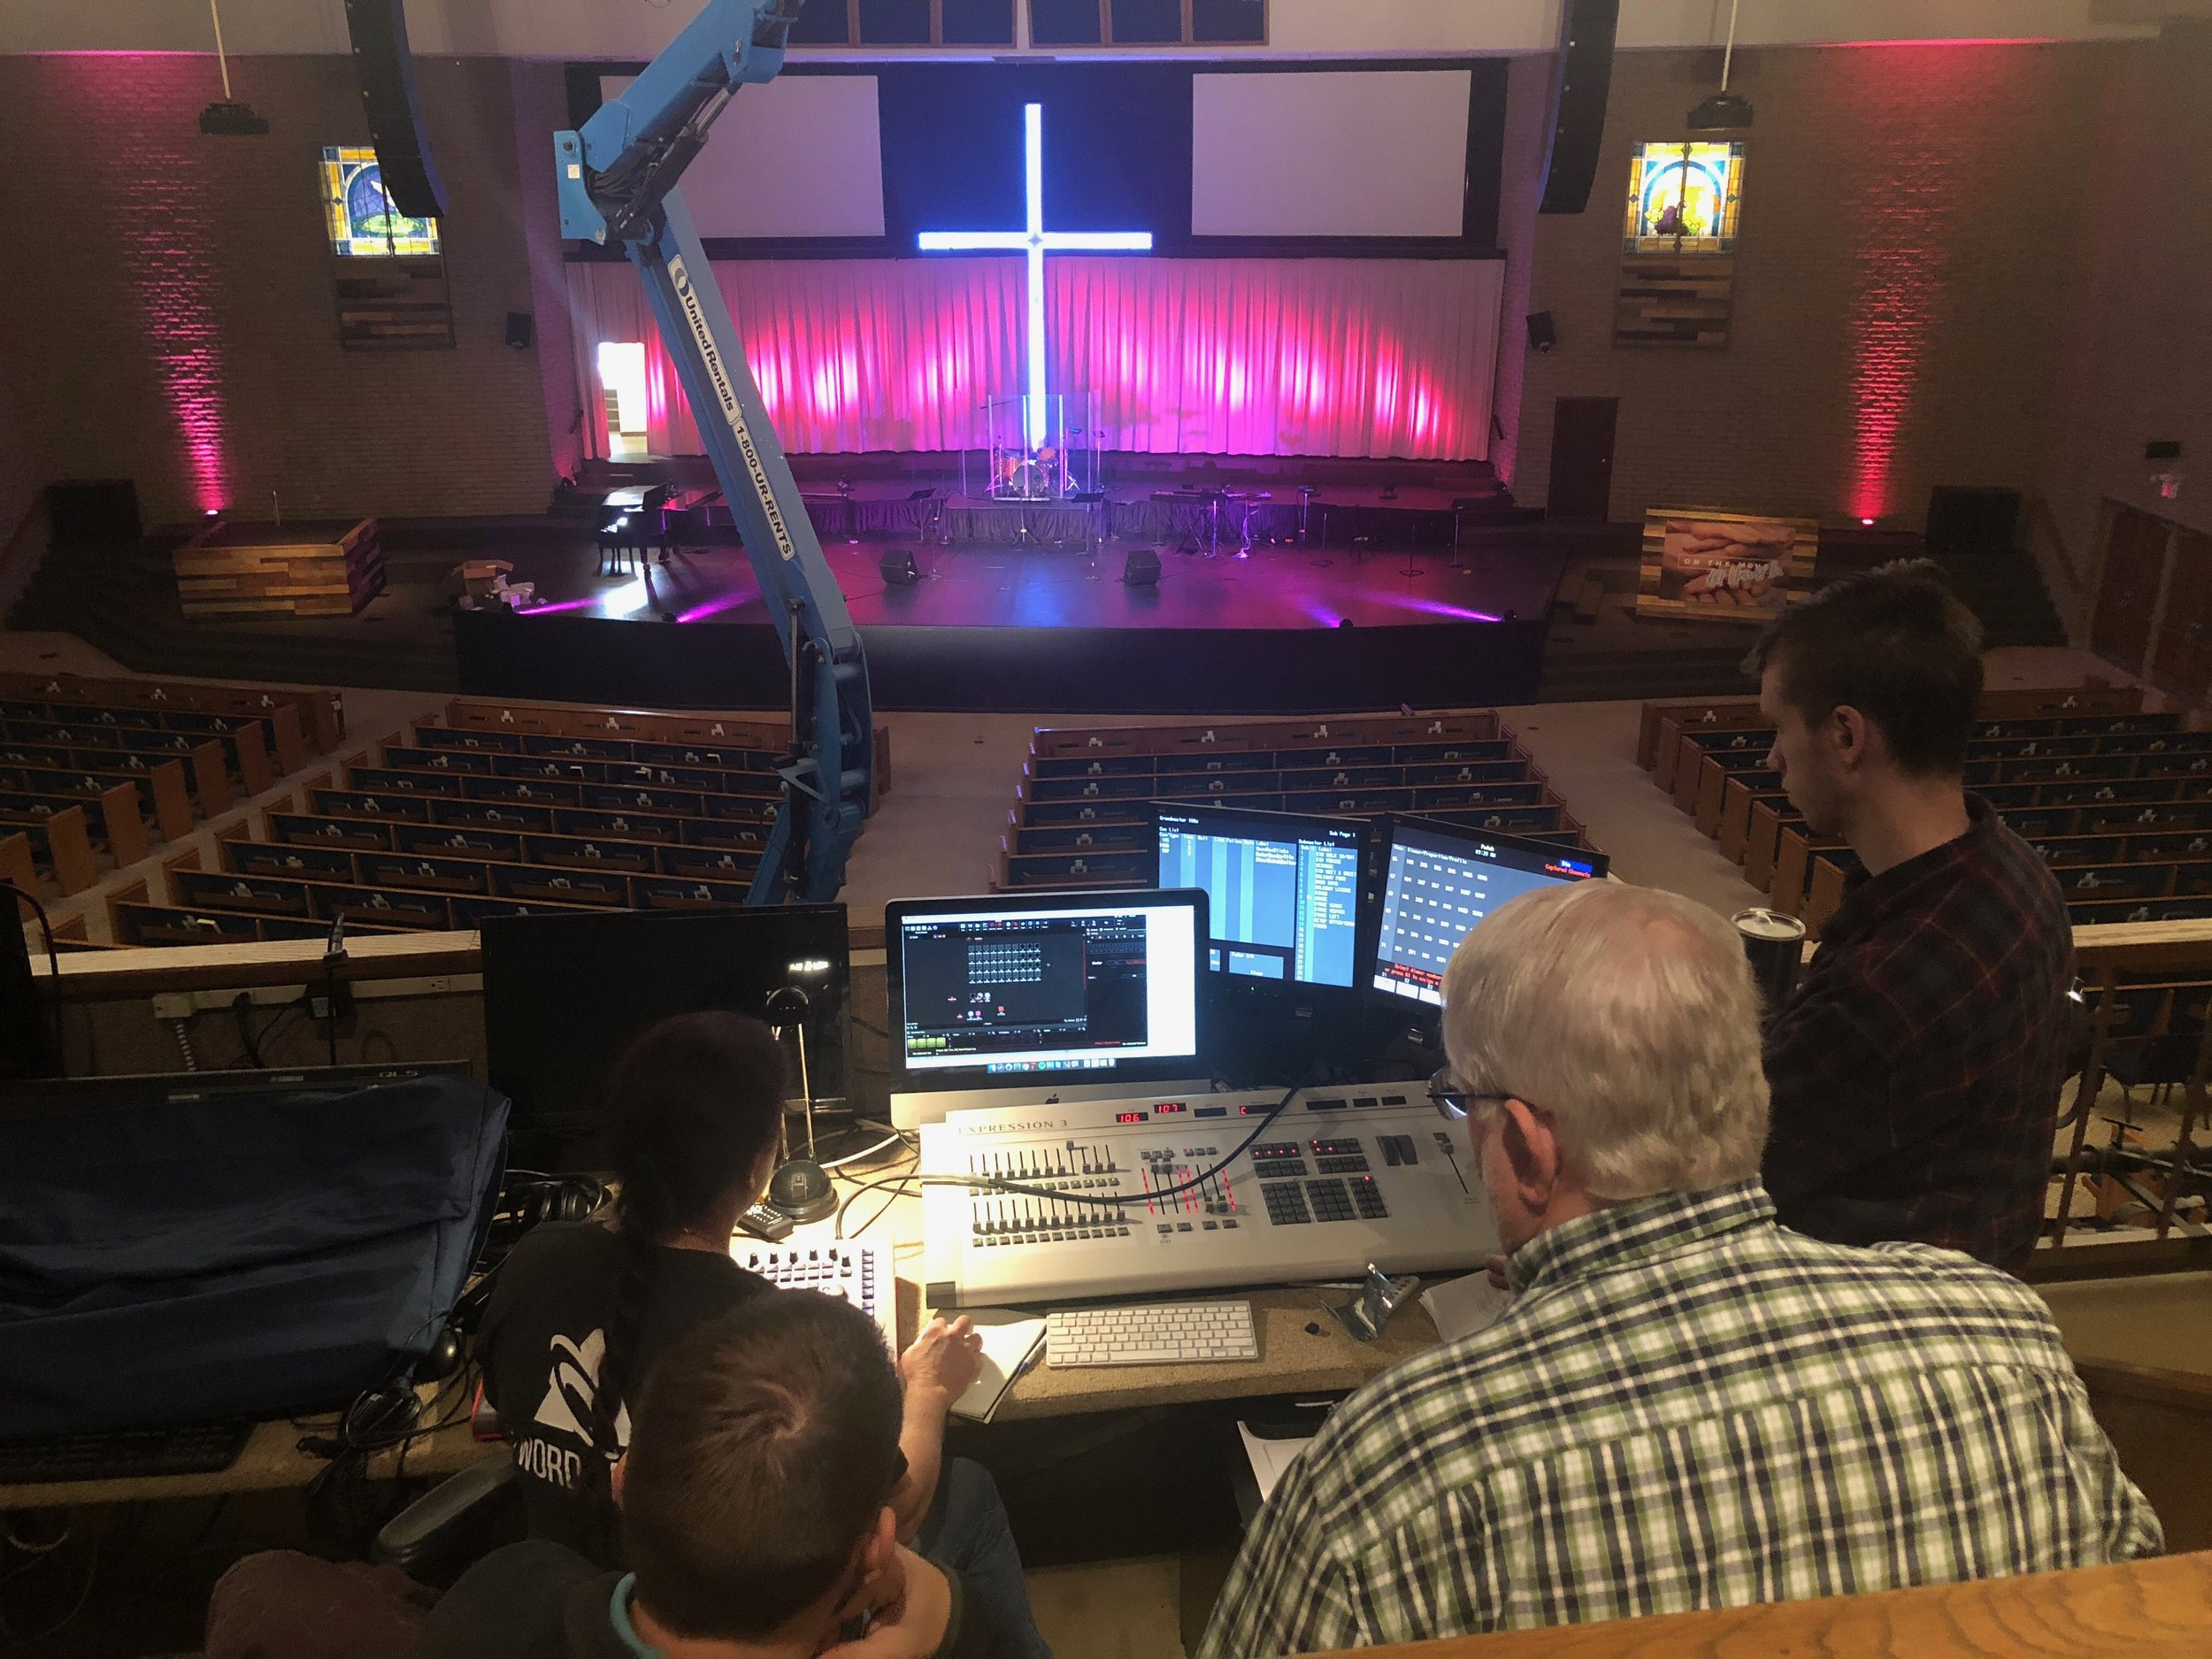 Grace Community Church volunteers being trained on their new Chroma Q lighting board and Vista 2 DMX control software.